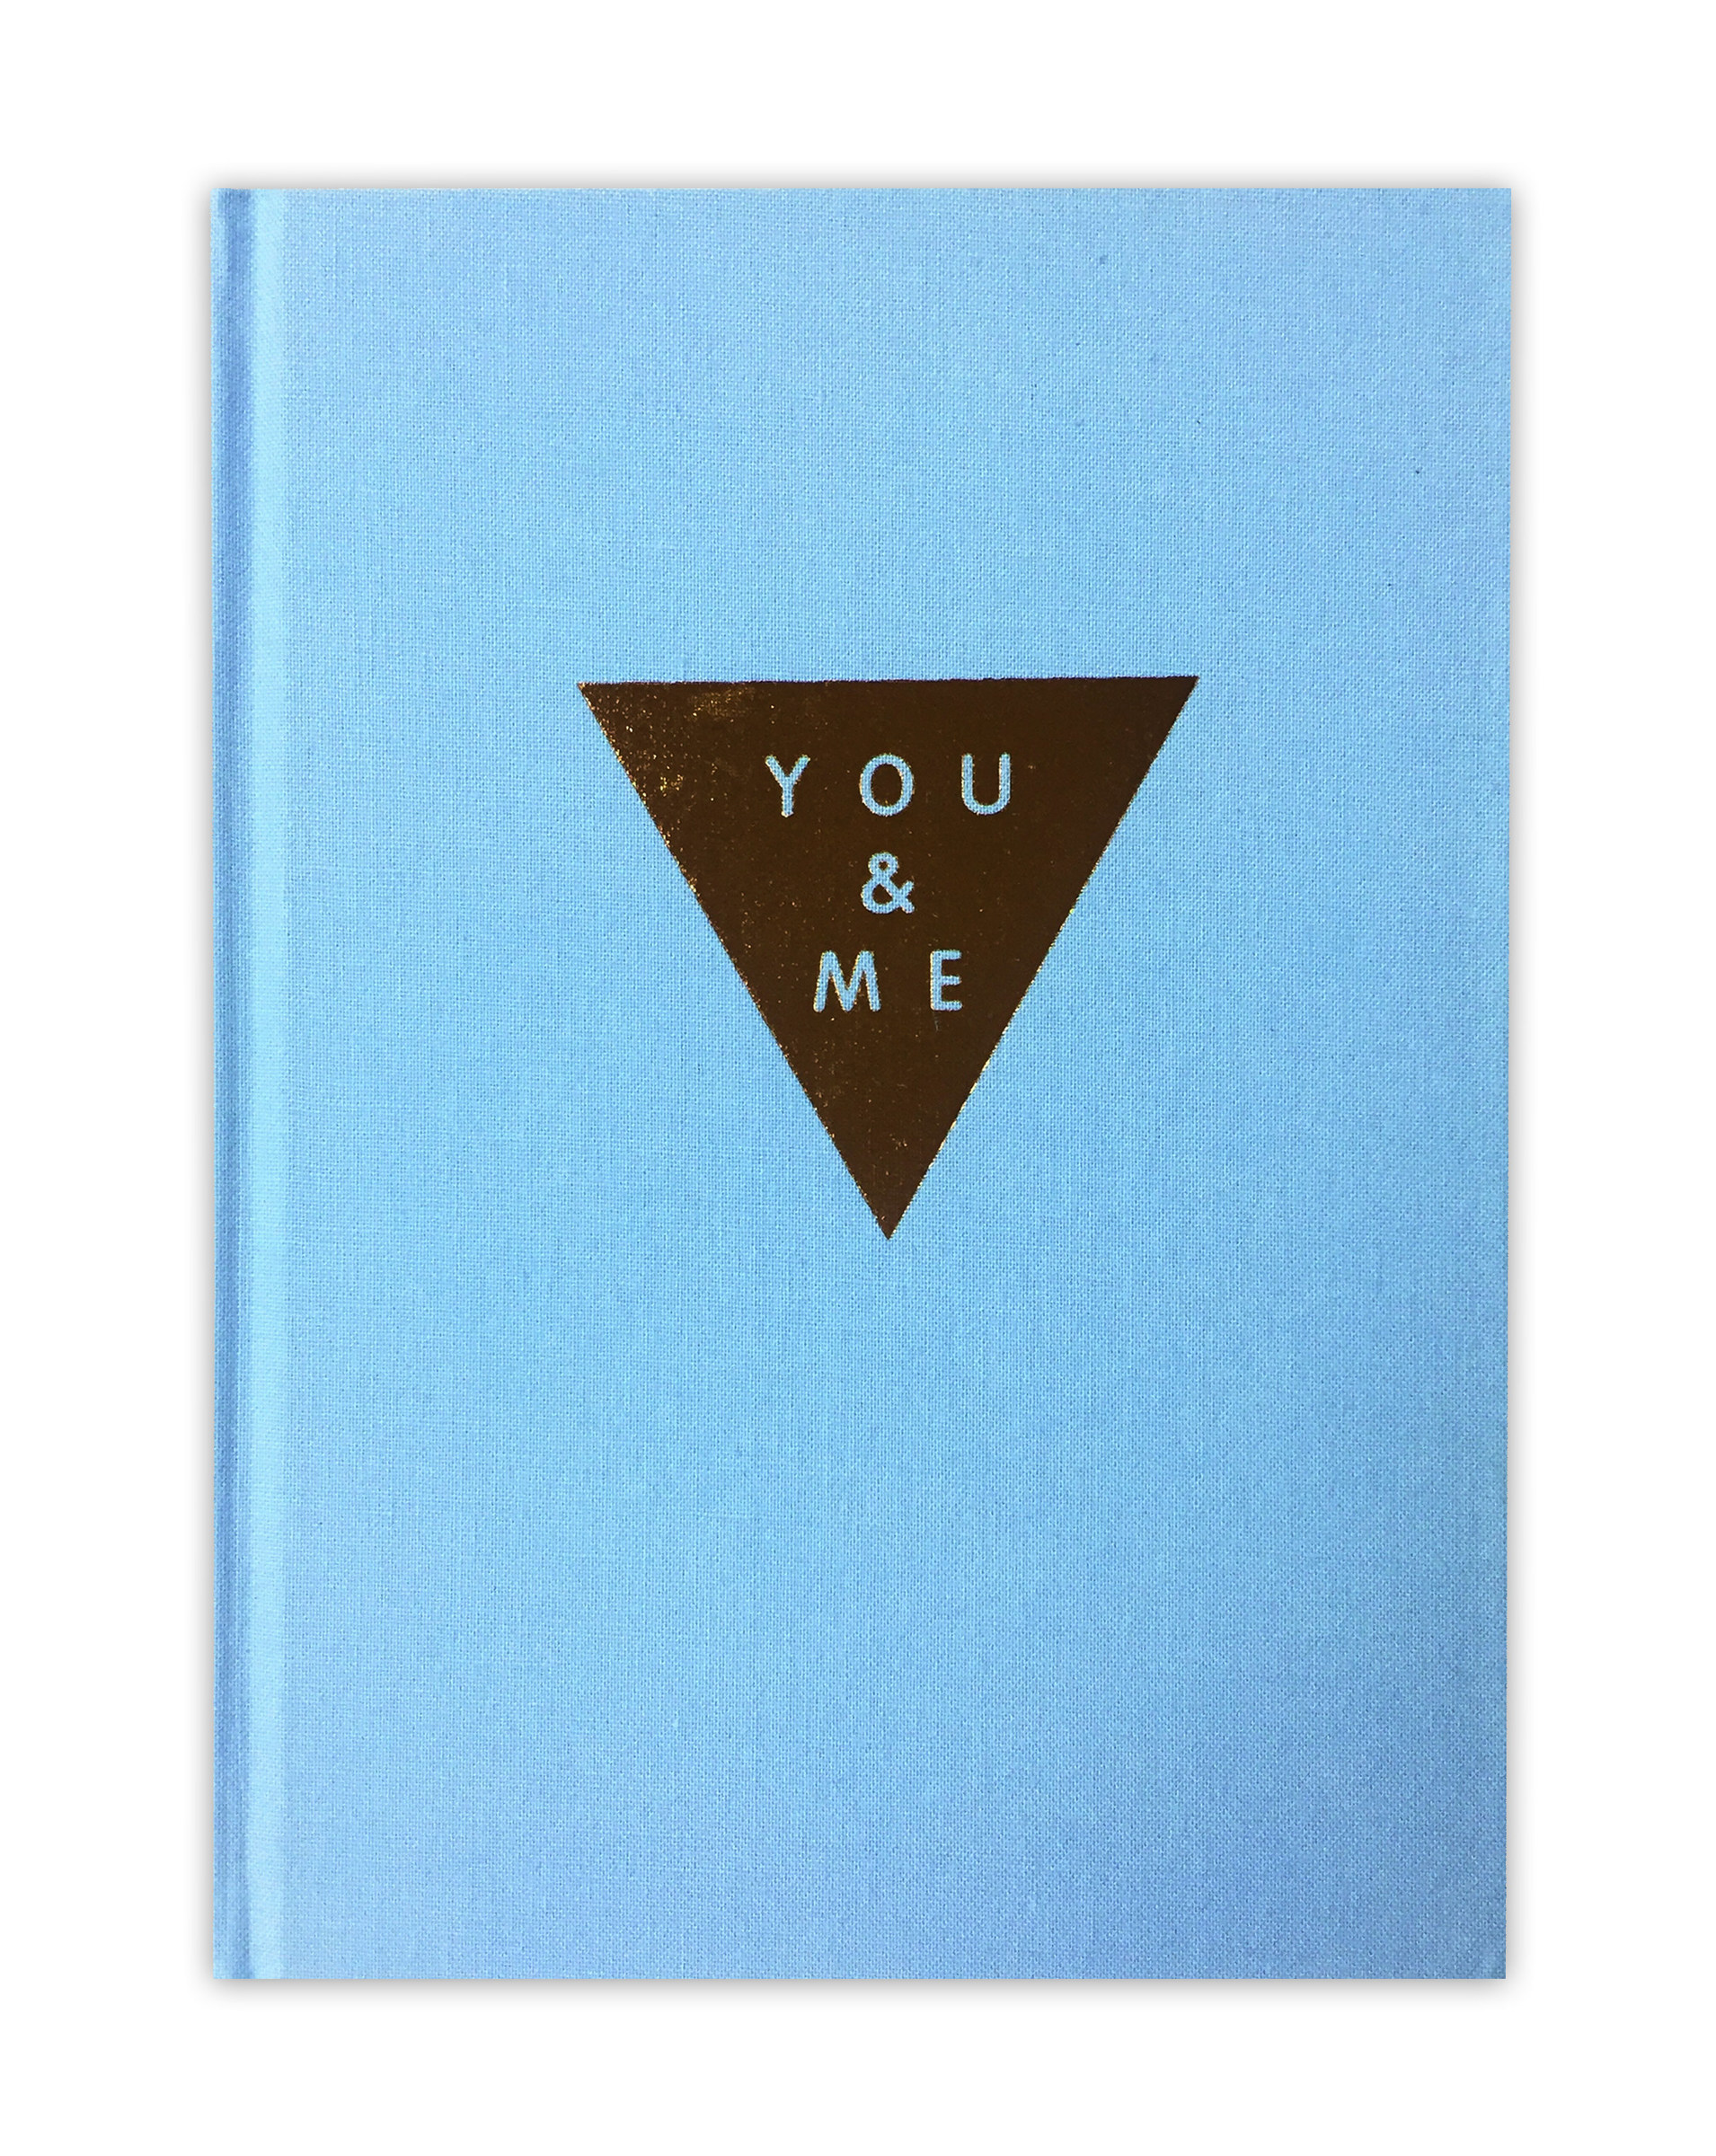 Fabric-notebook-(you-&-me)-blue.jpg